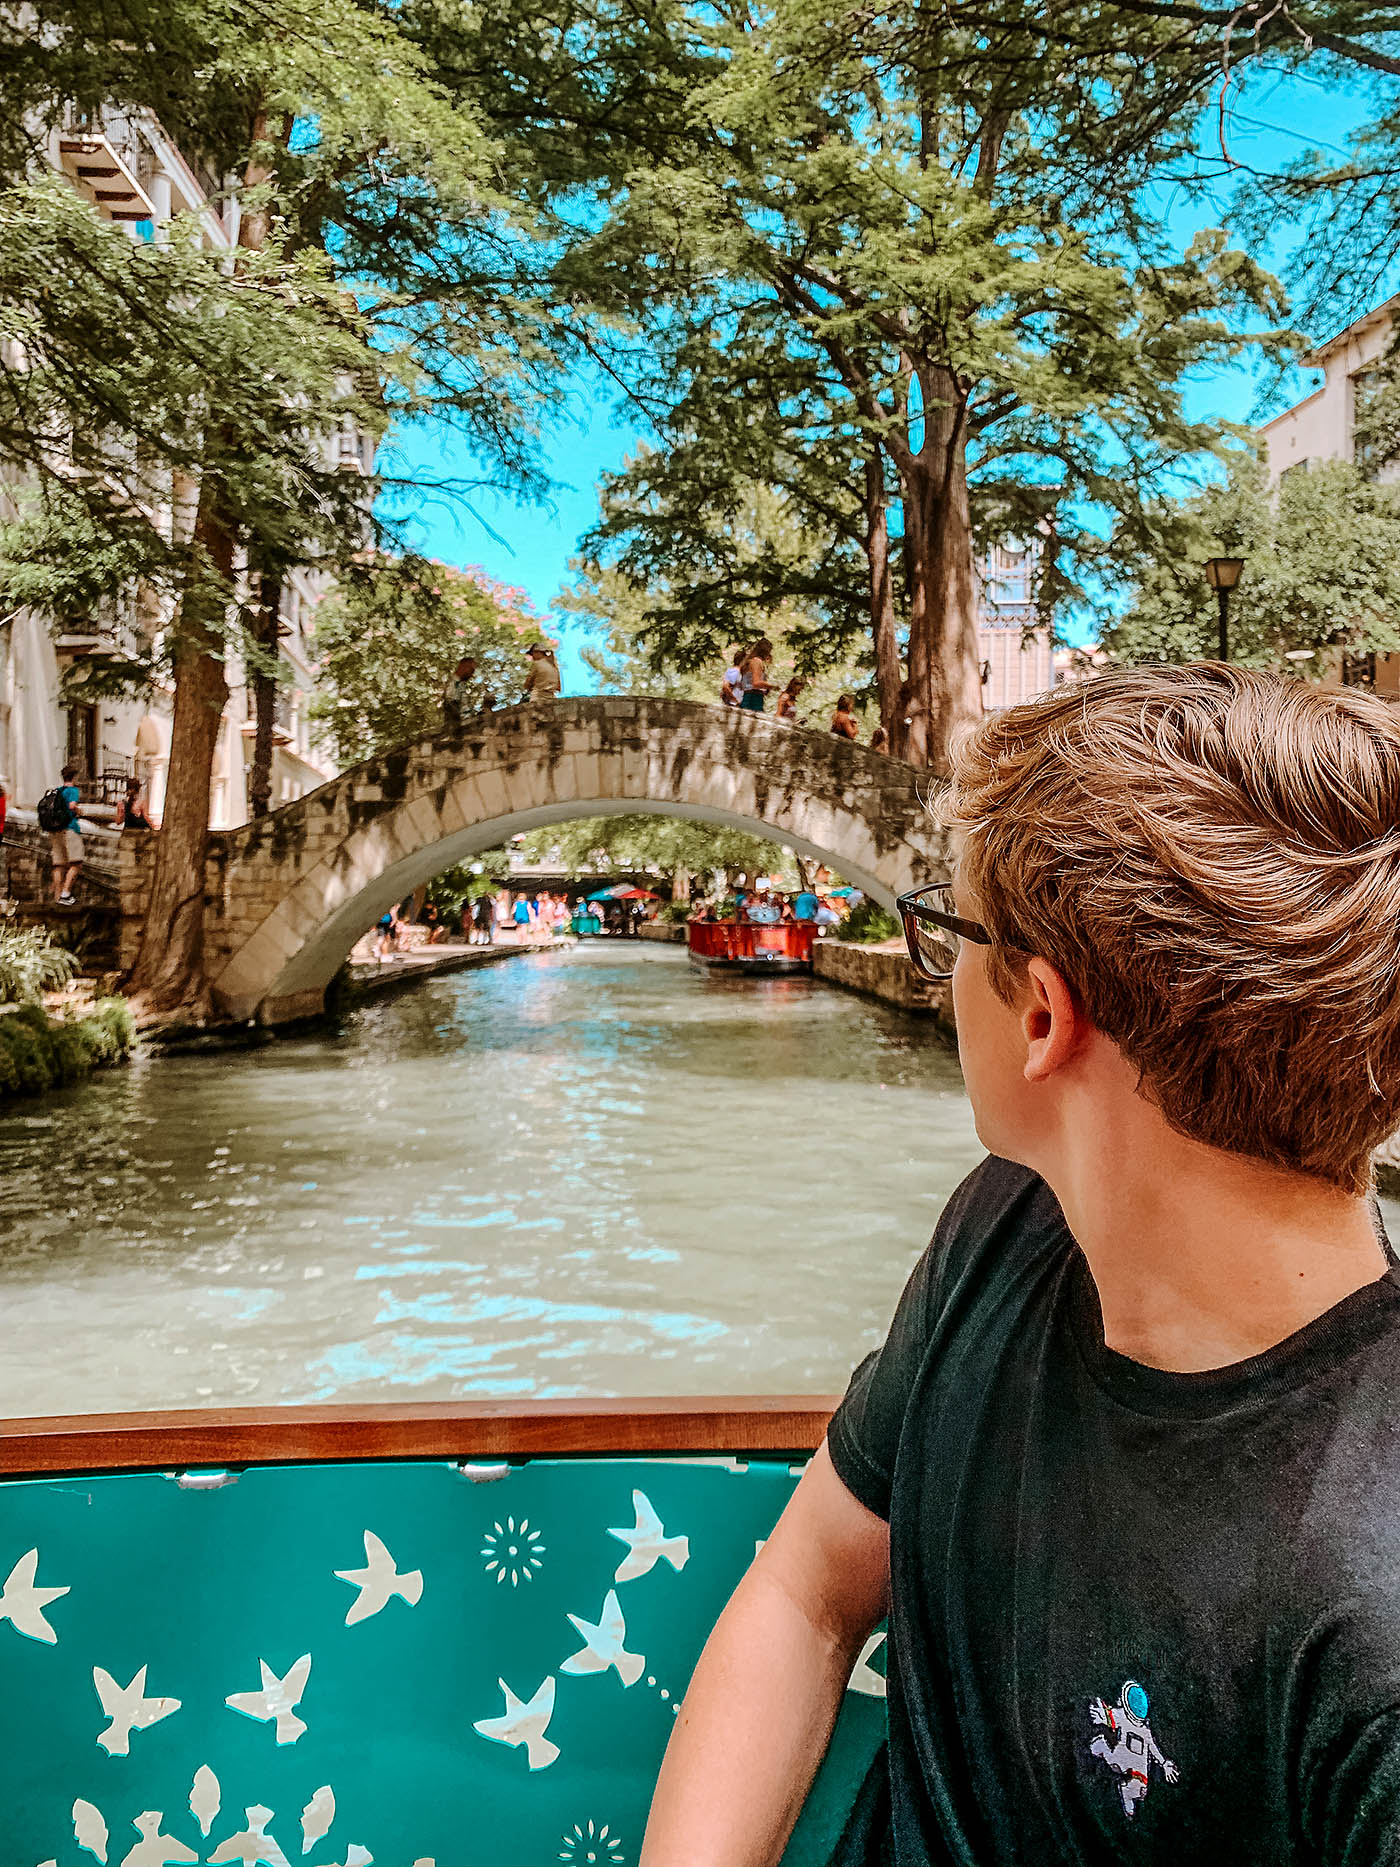 Teenaged boy looking over his shoulder at the River in San Antonio on a river cruise